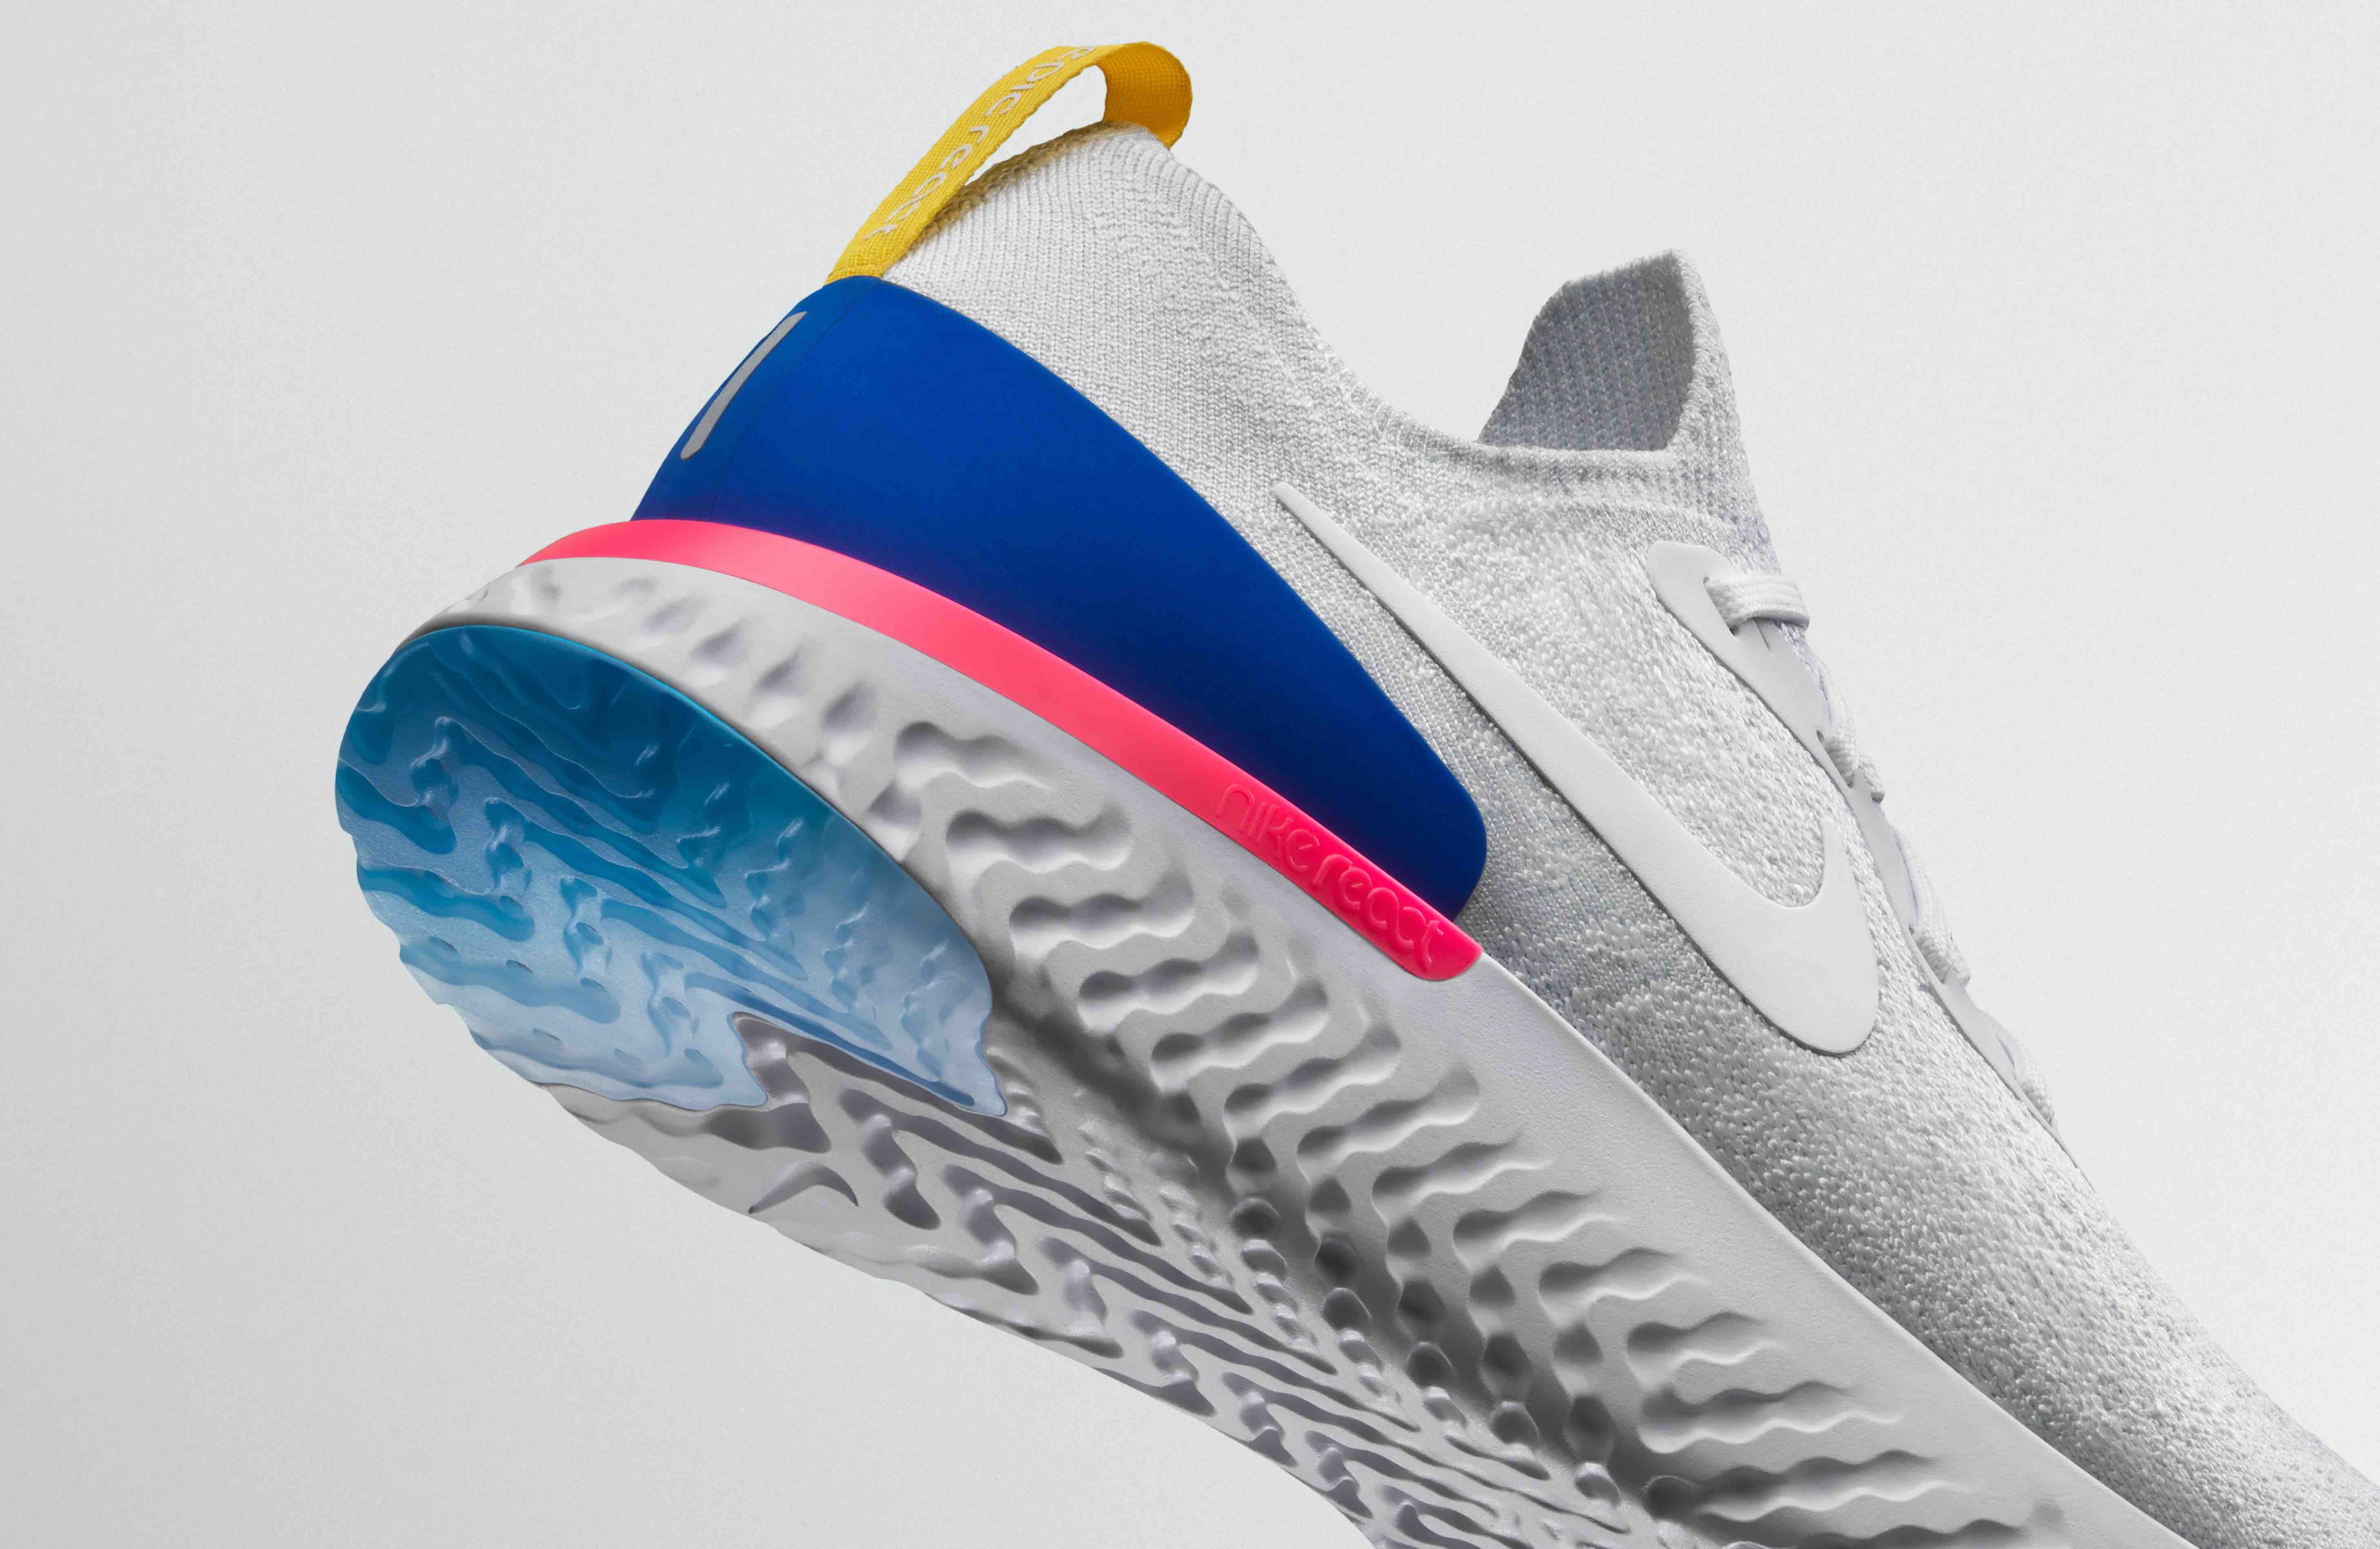 Nike Epic React Flyknit - changes on the throne are coming?